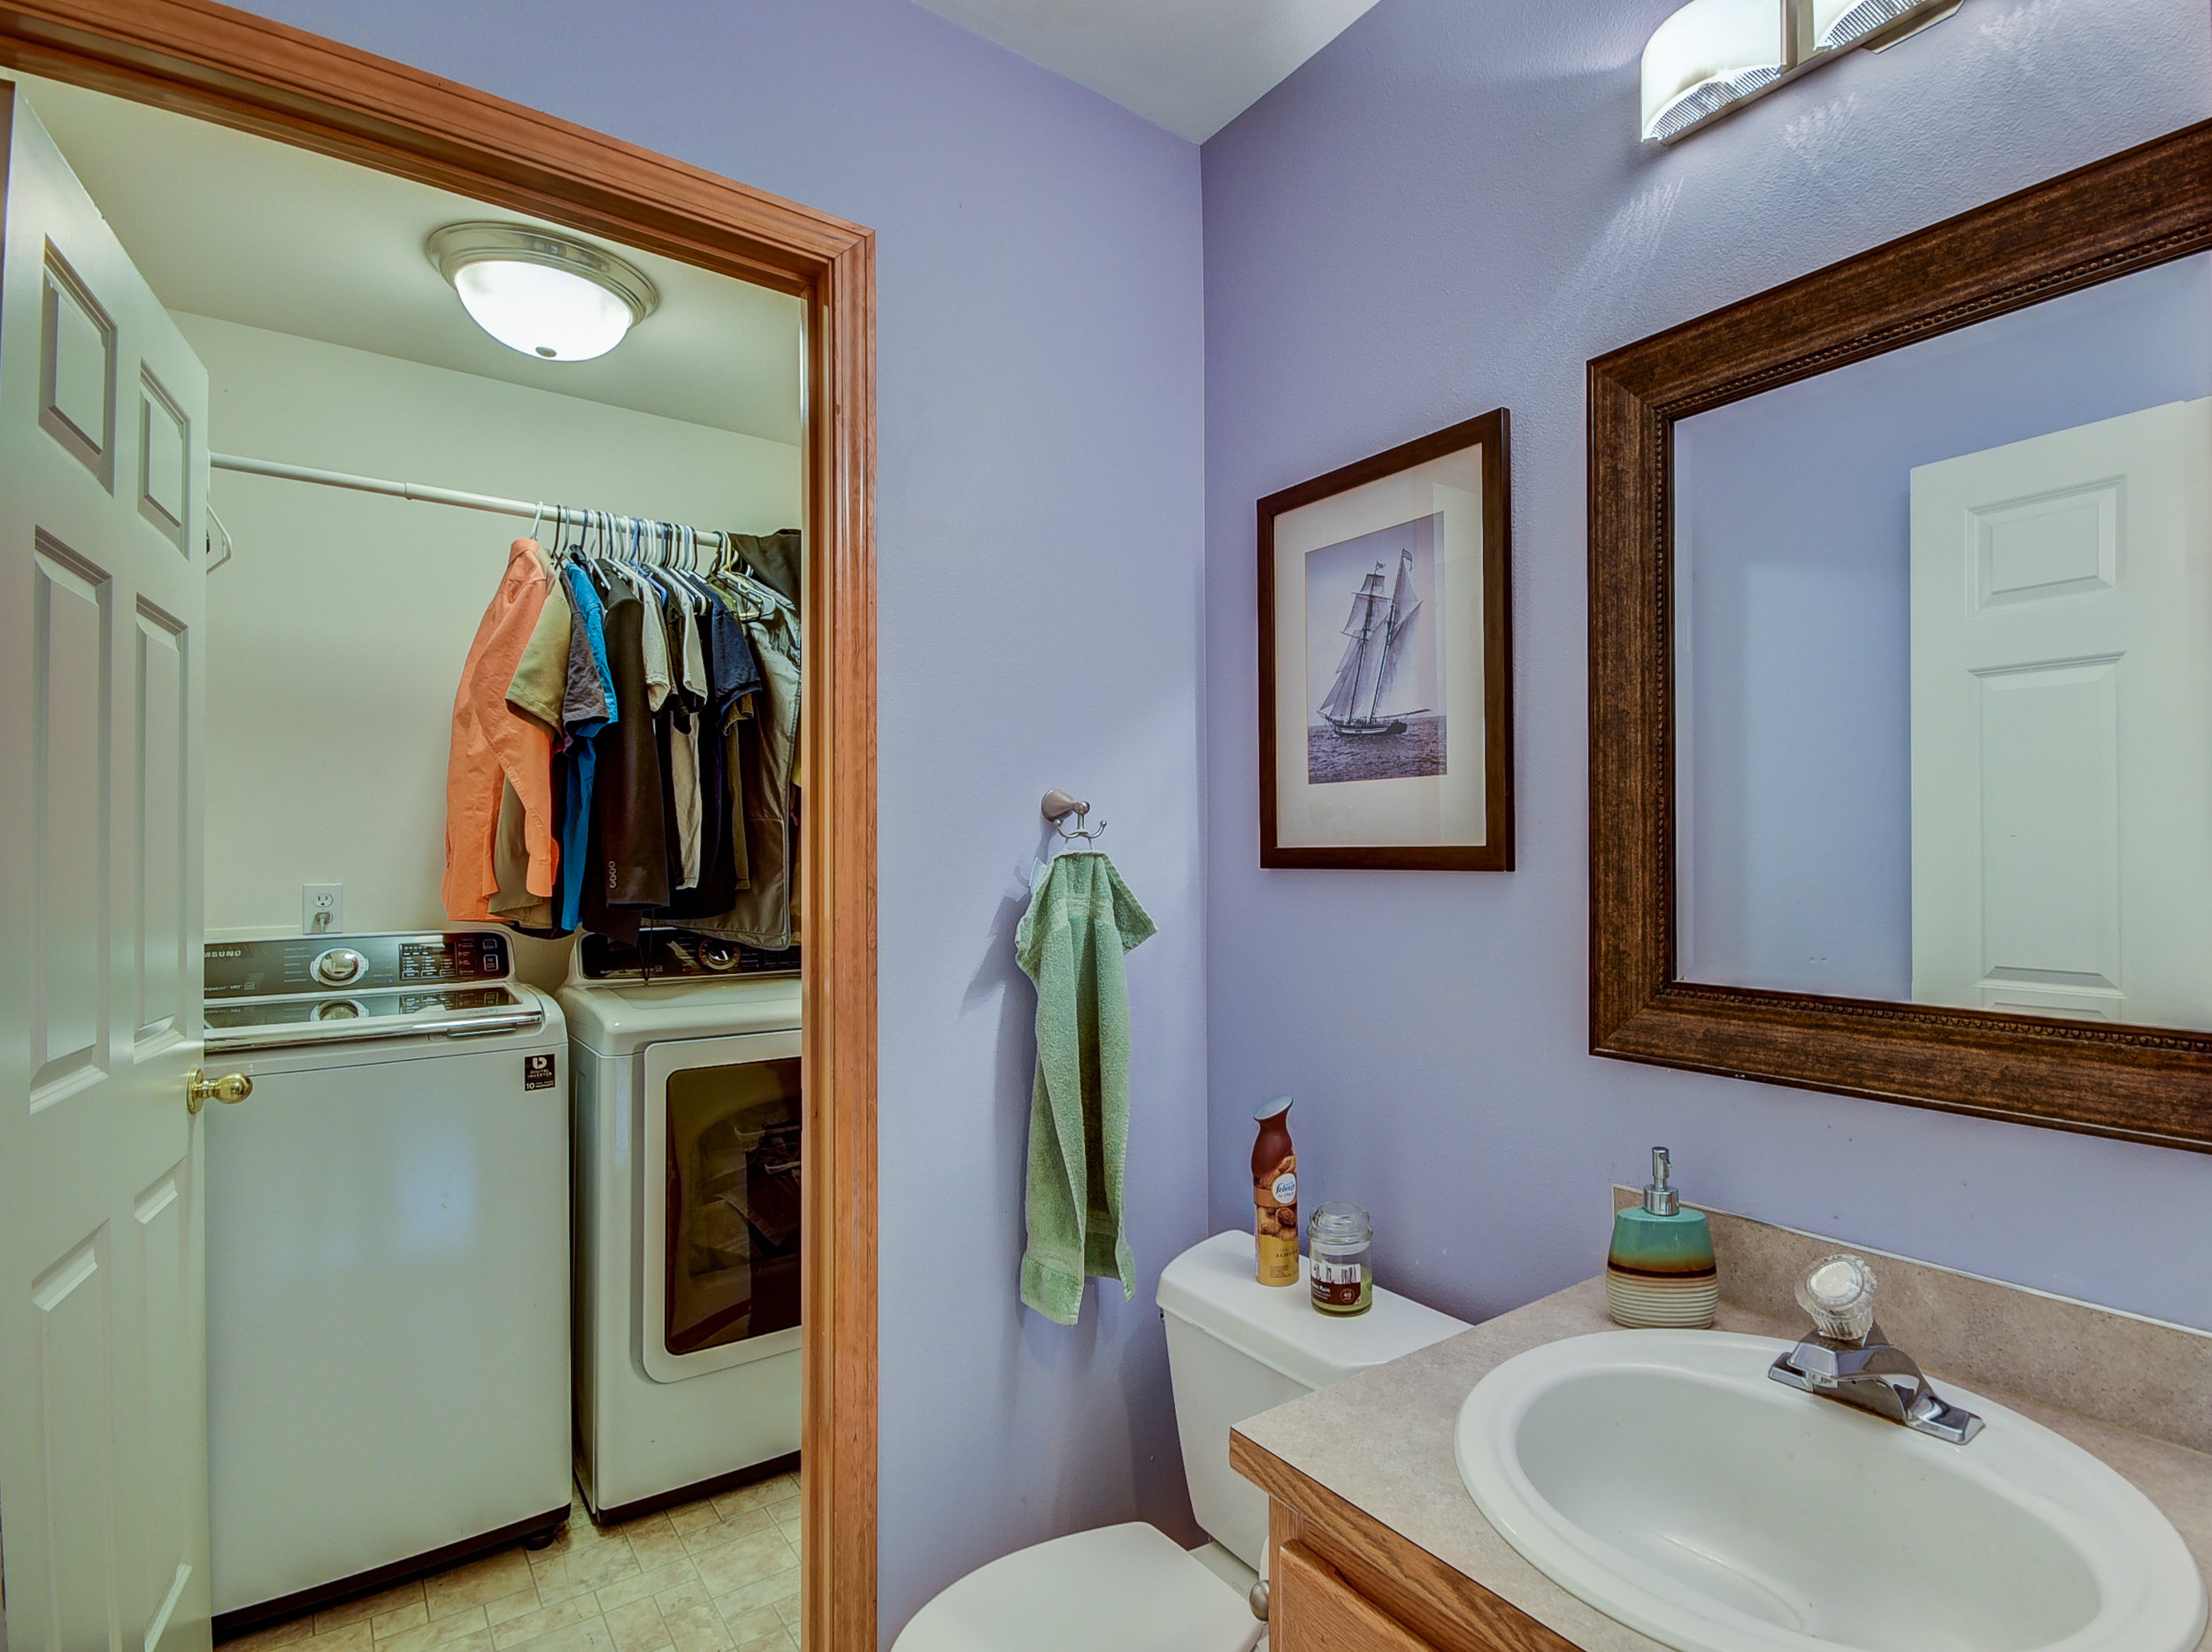 Conveniently set downstairs is the utility room & a half bath...